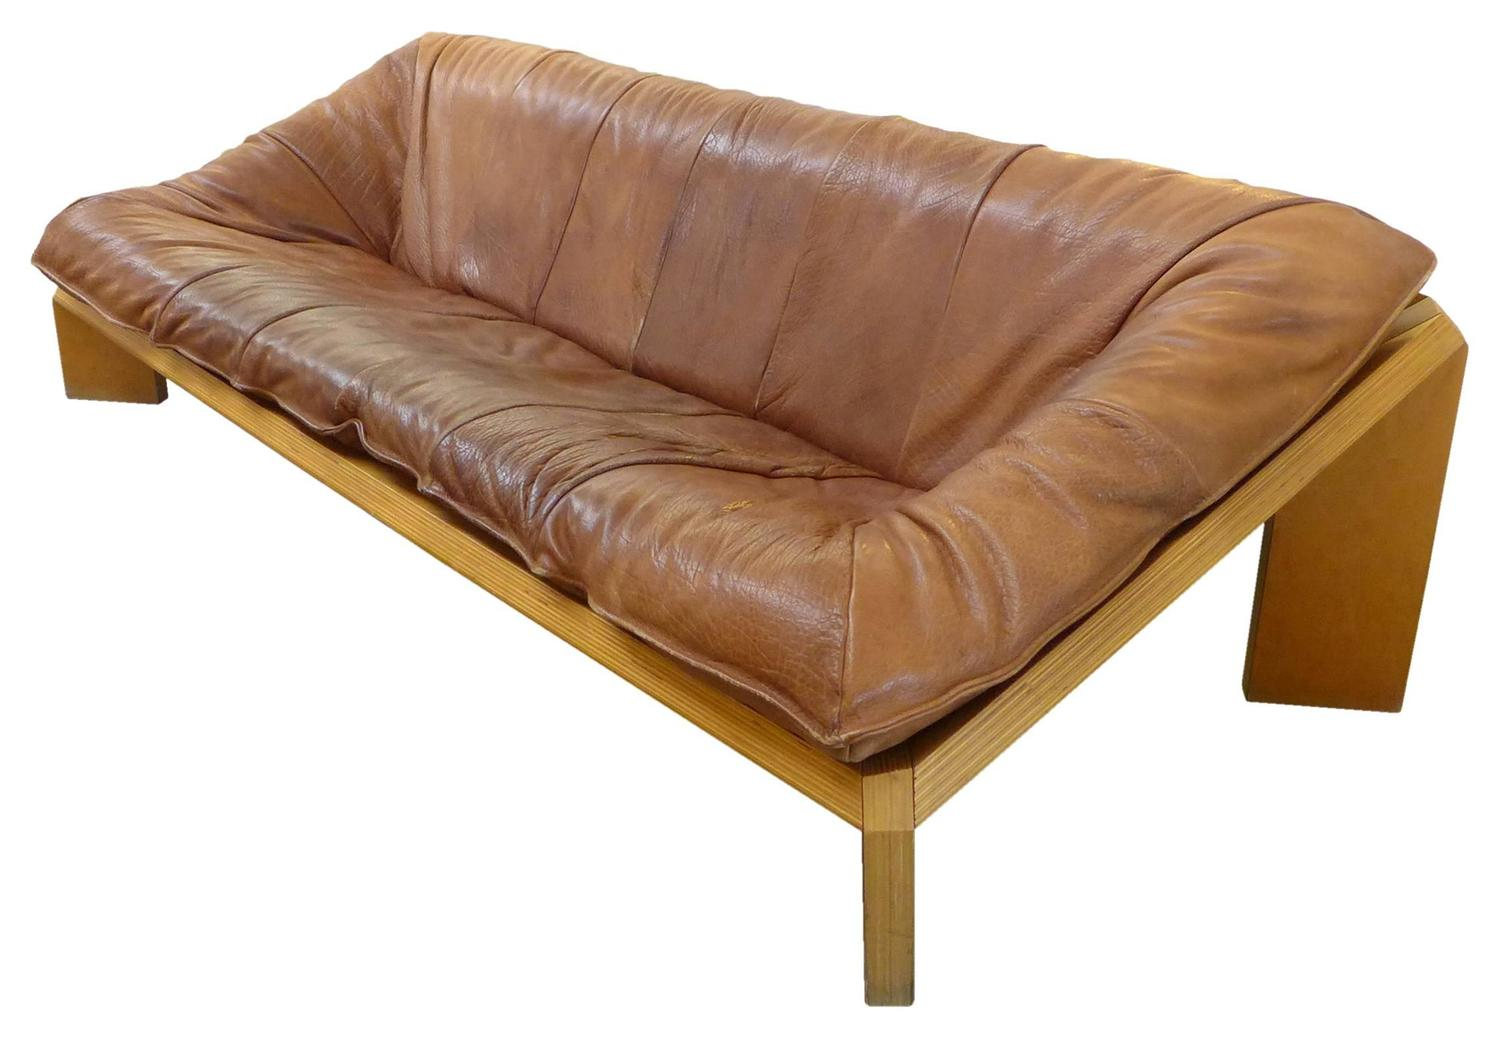 Leather And Laminated Wood Quot Oslo Quot Sofa By Gerard Van Den